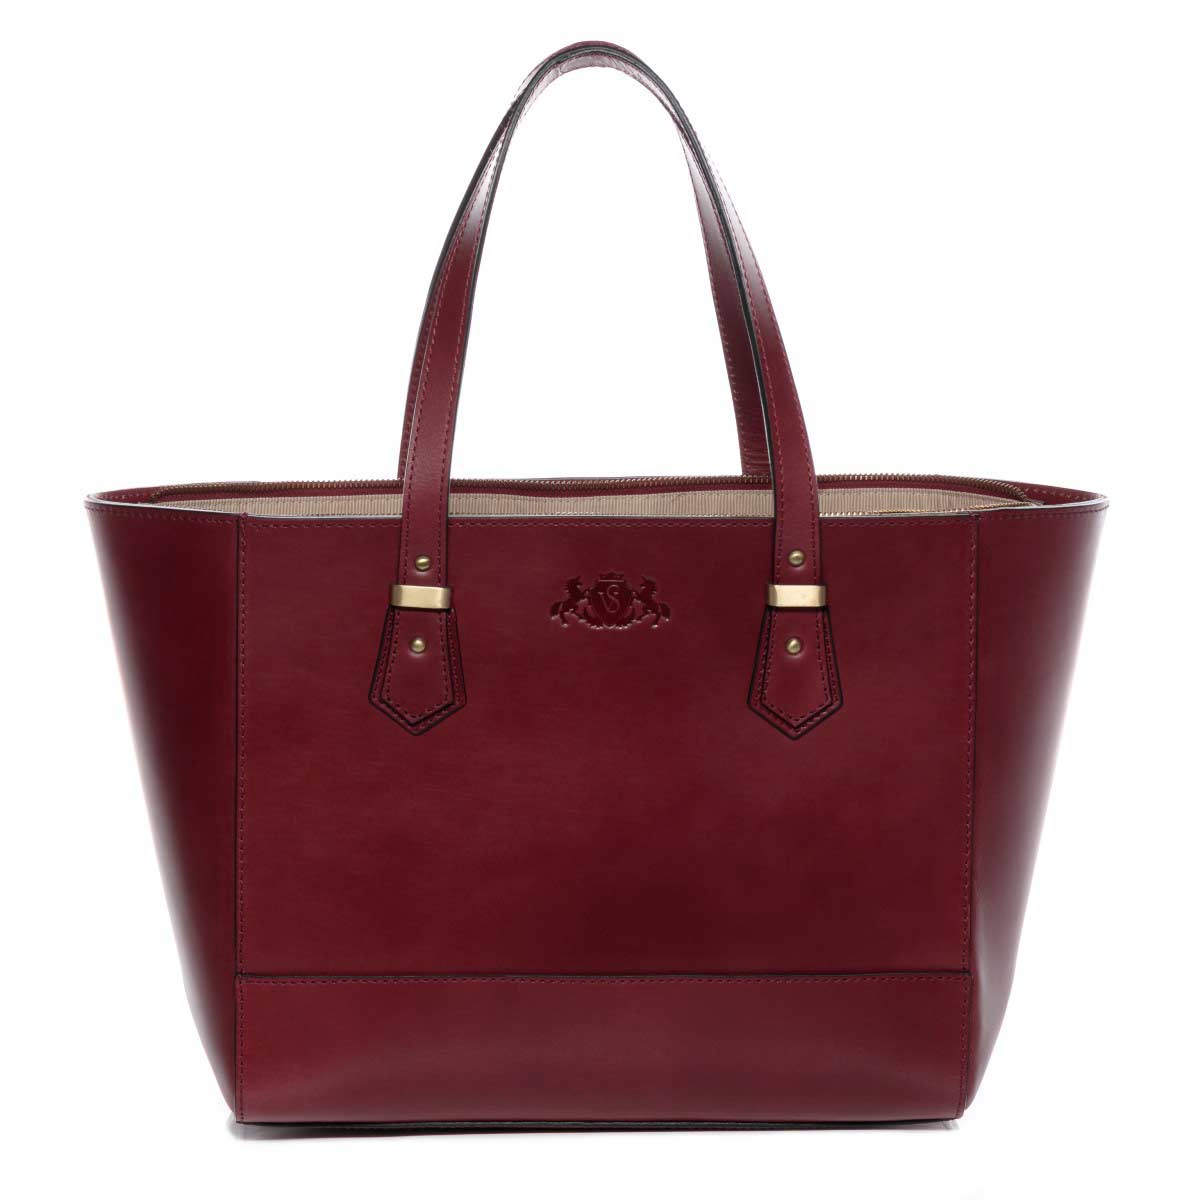 Tasche in bordeaux rot